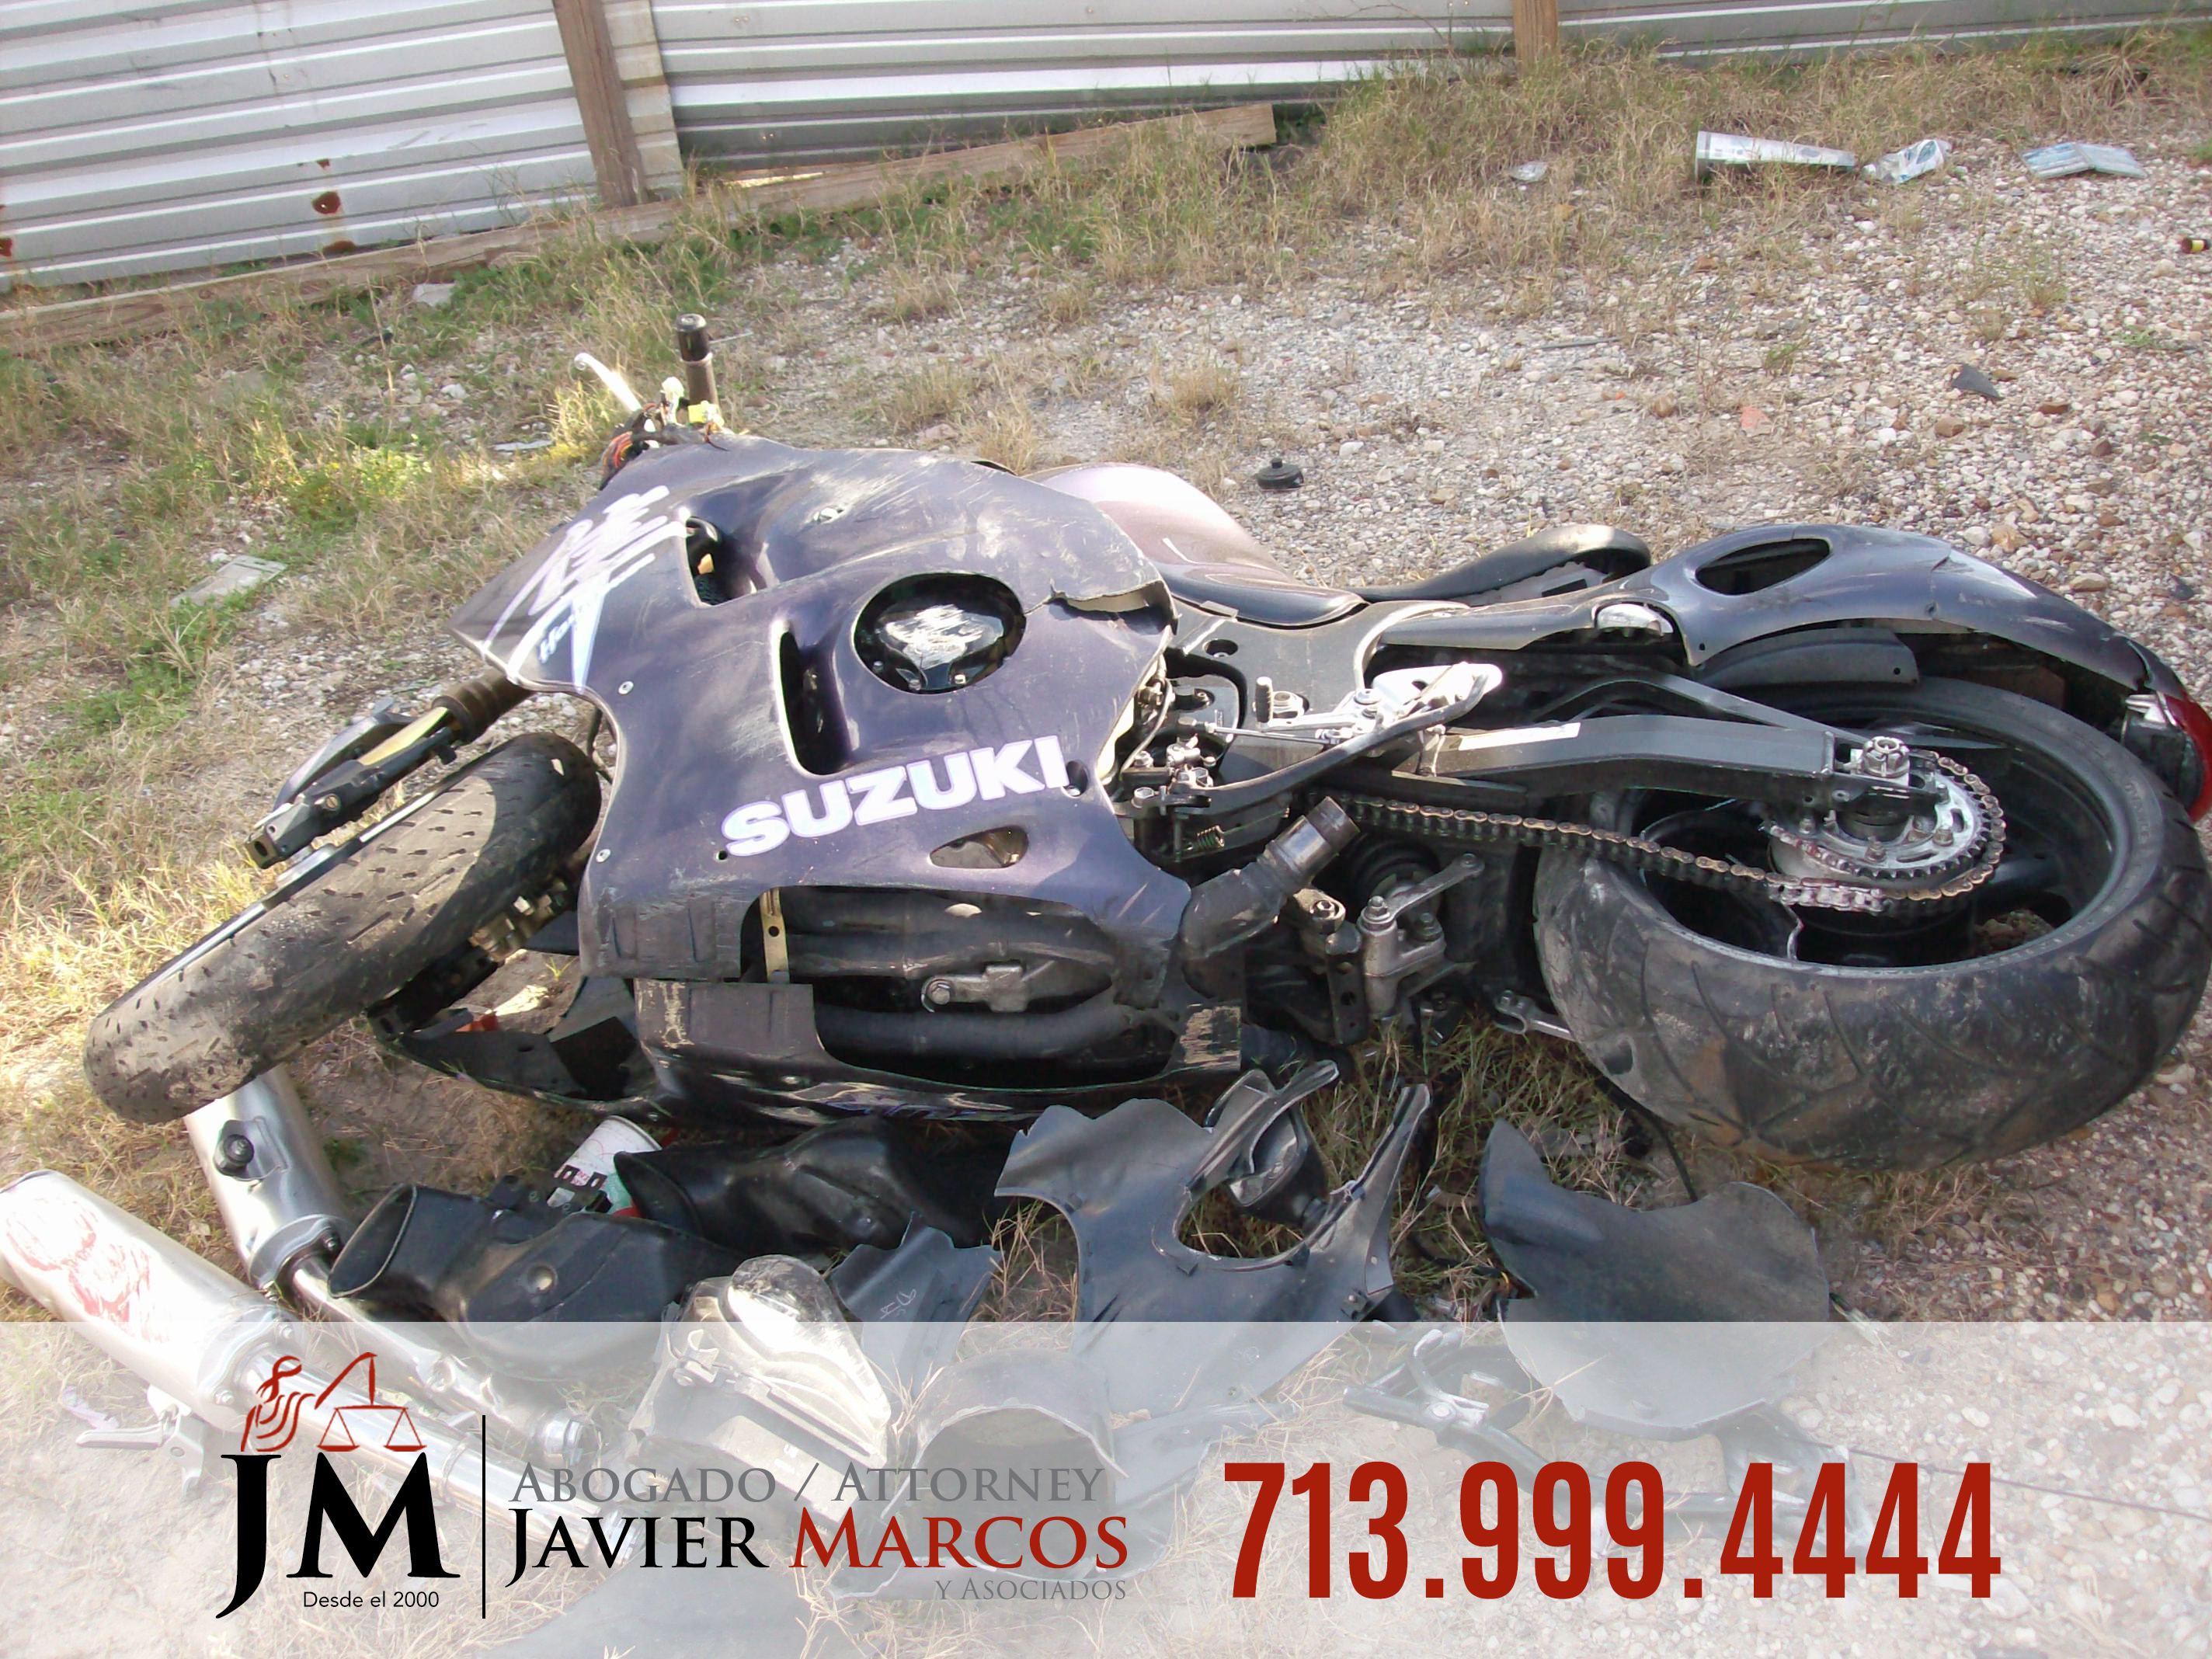 Motorcycle Accident Attorney | Attorney Javier Marcos | 713.999.4444